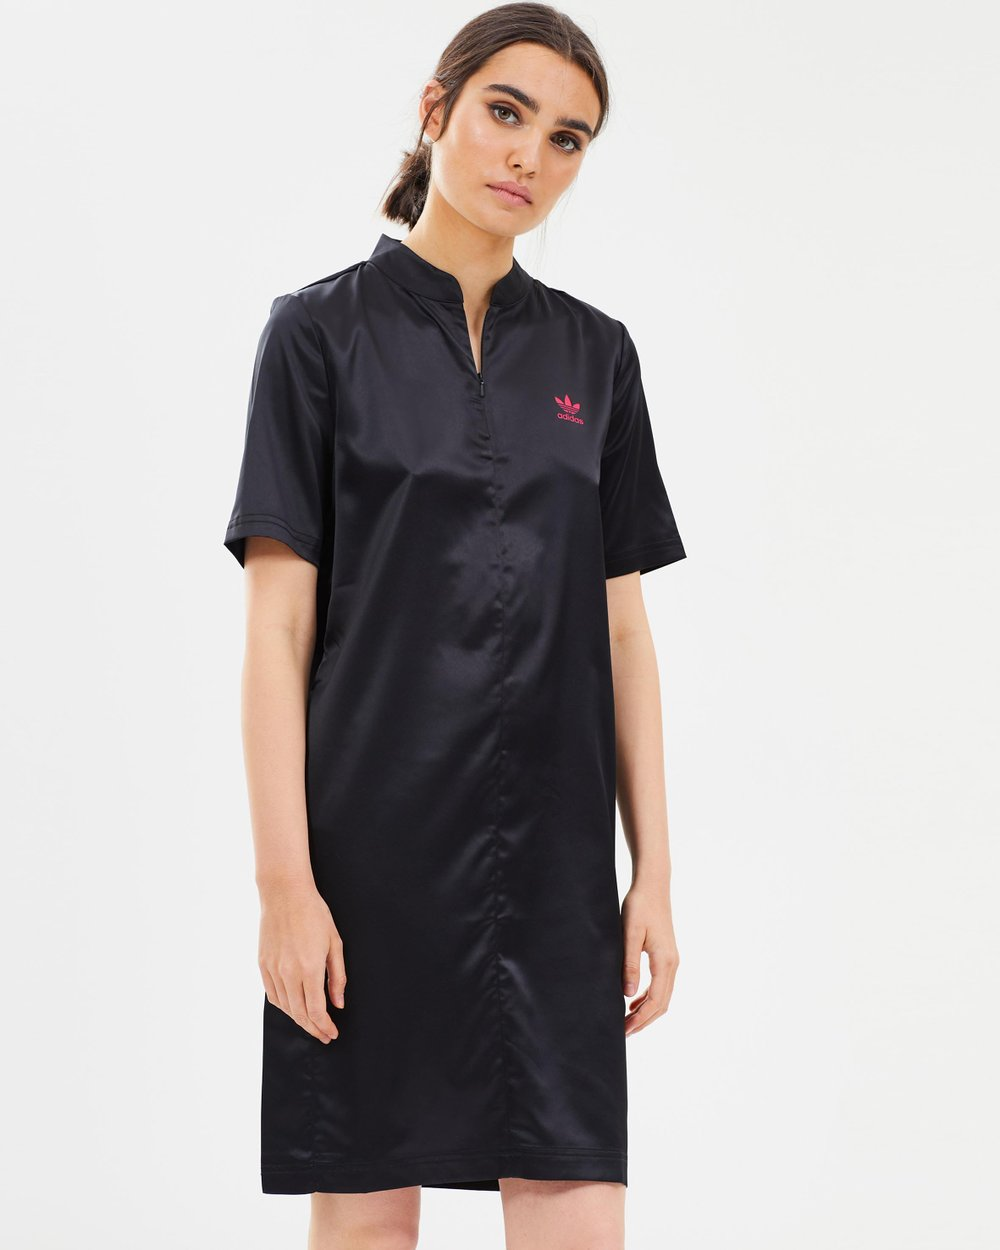 c8b4a01f318 Leoflage Tee Dress by adidas Originals Online